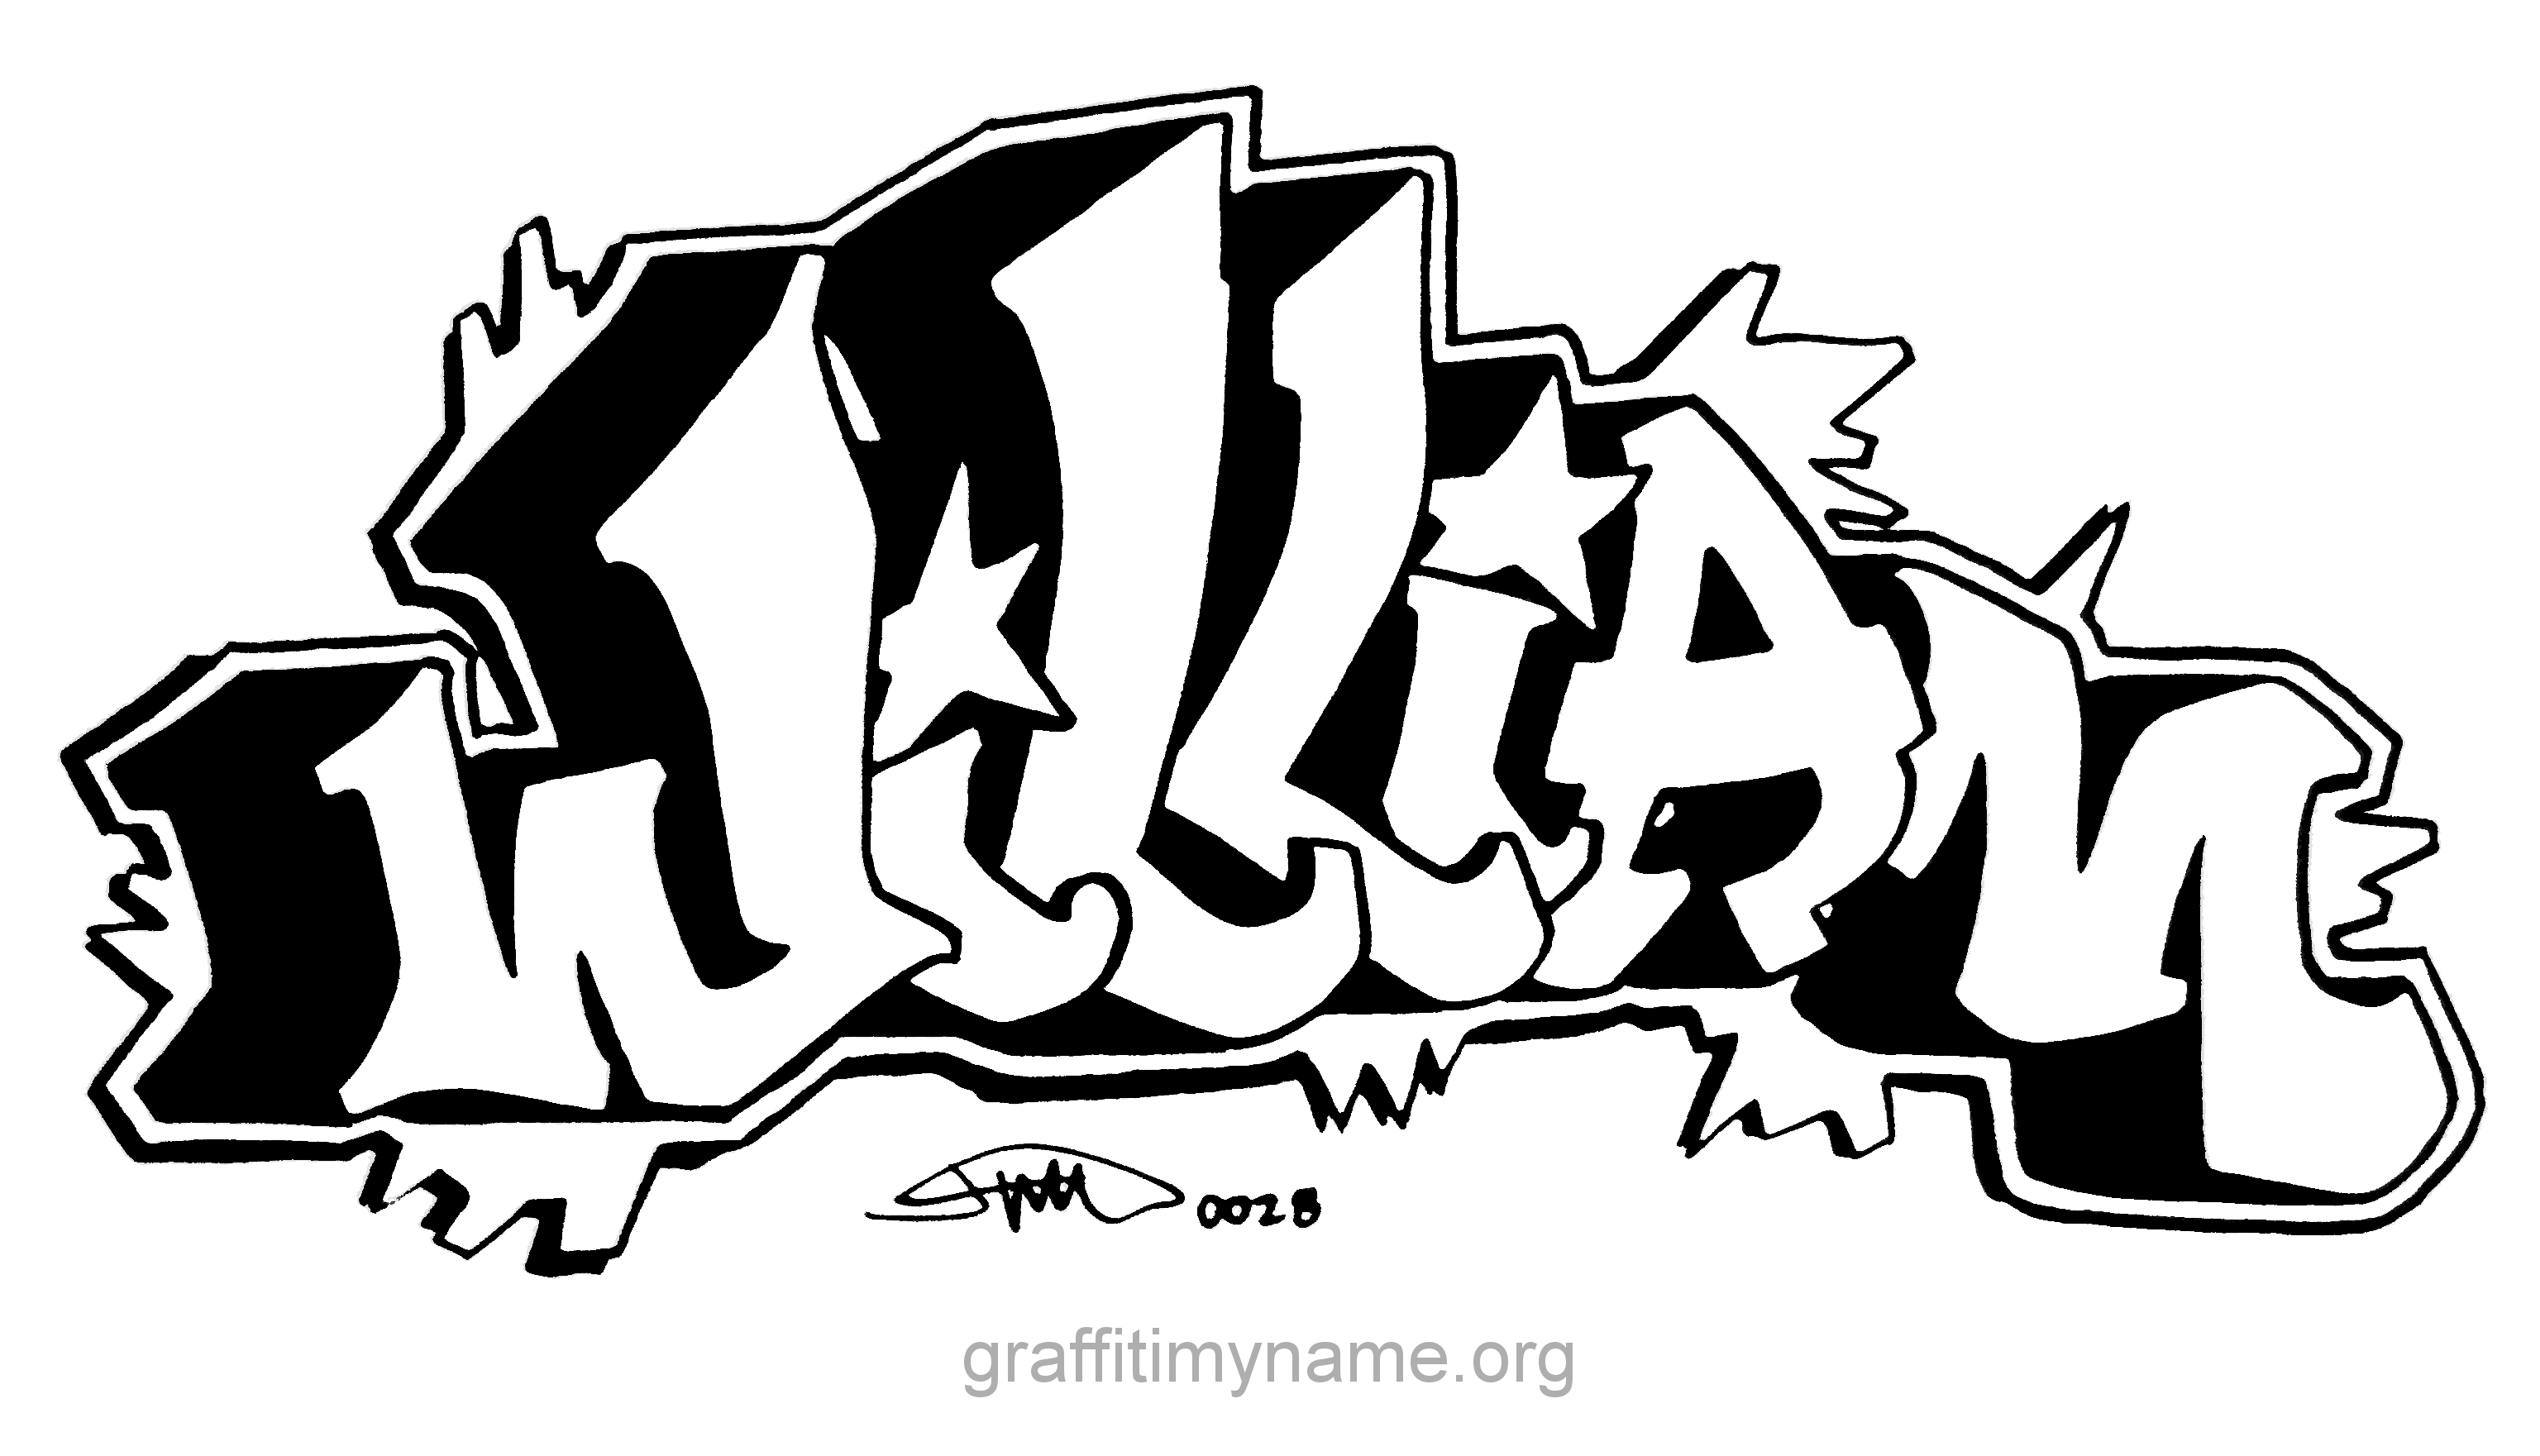 The name billy images william in graffiti